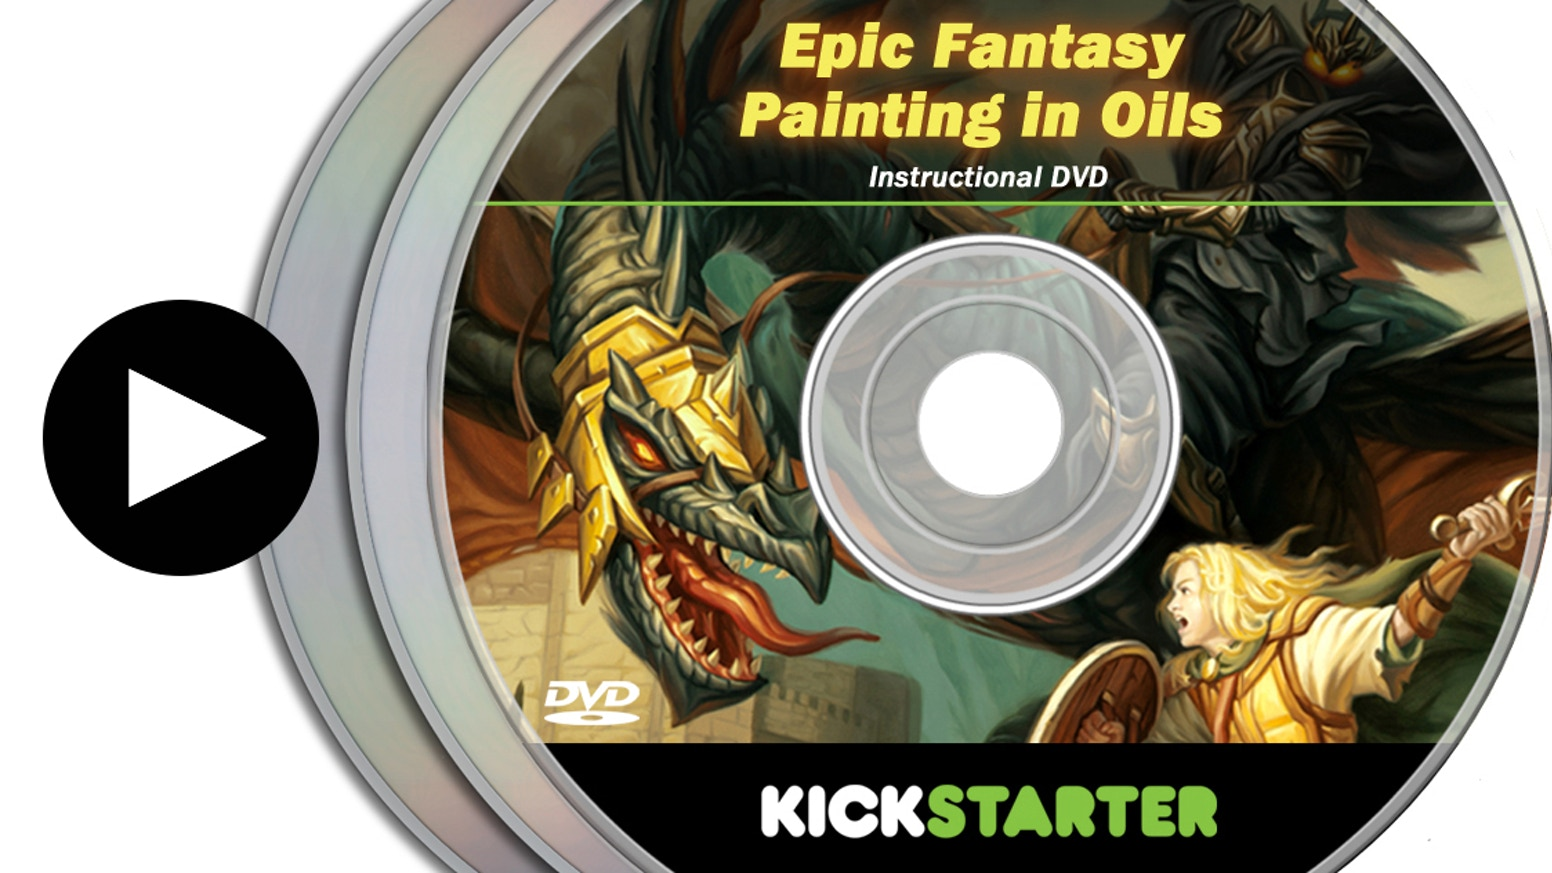 A massive instructional video of the process for 2 fantasy oil paintings by renowned video game artist Mike Sass.